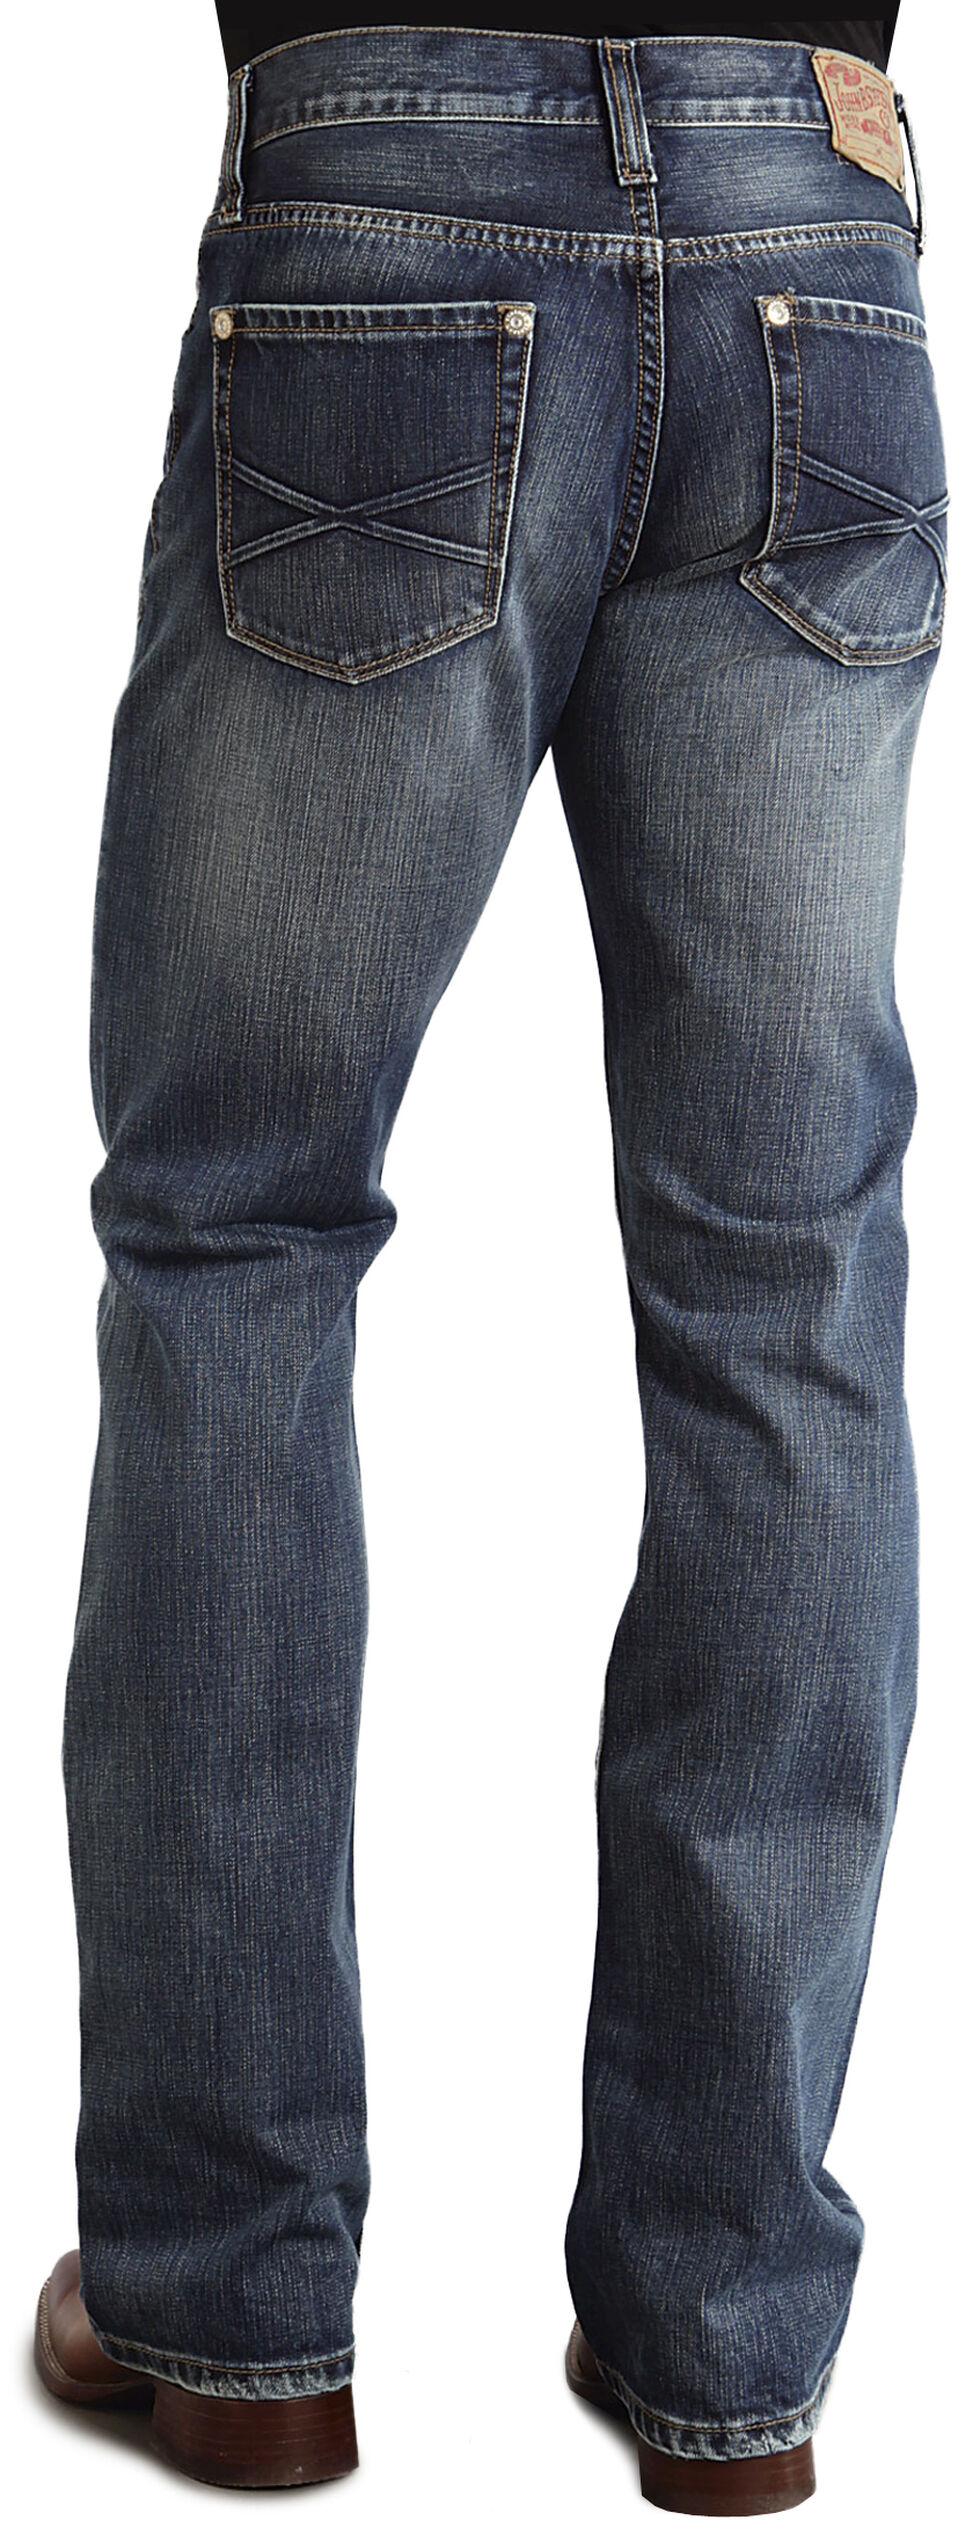 "Stetson Rock Fit Embossed ""X"" Stitched Jeans, Dark Stone, hi-res"